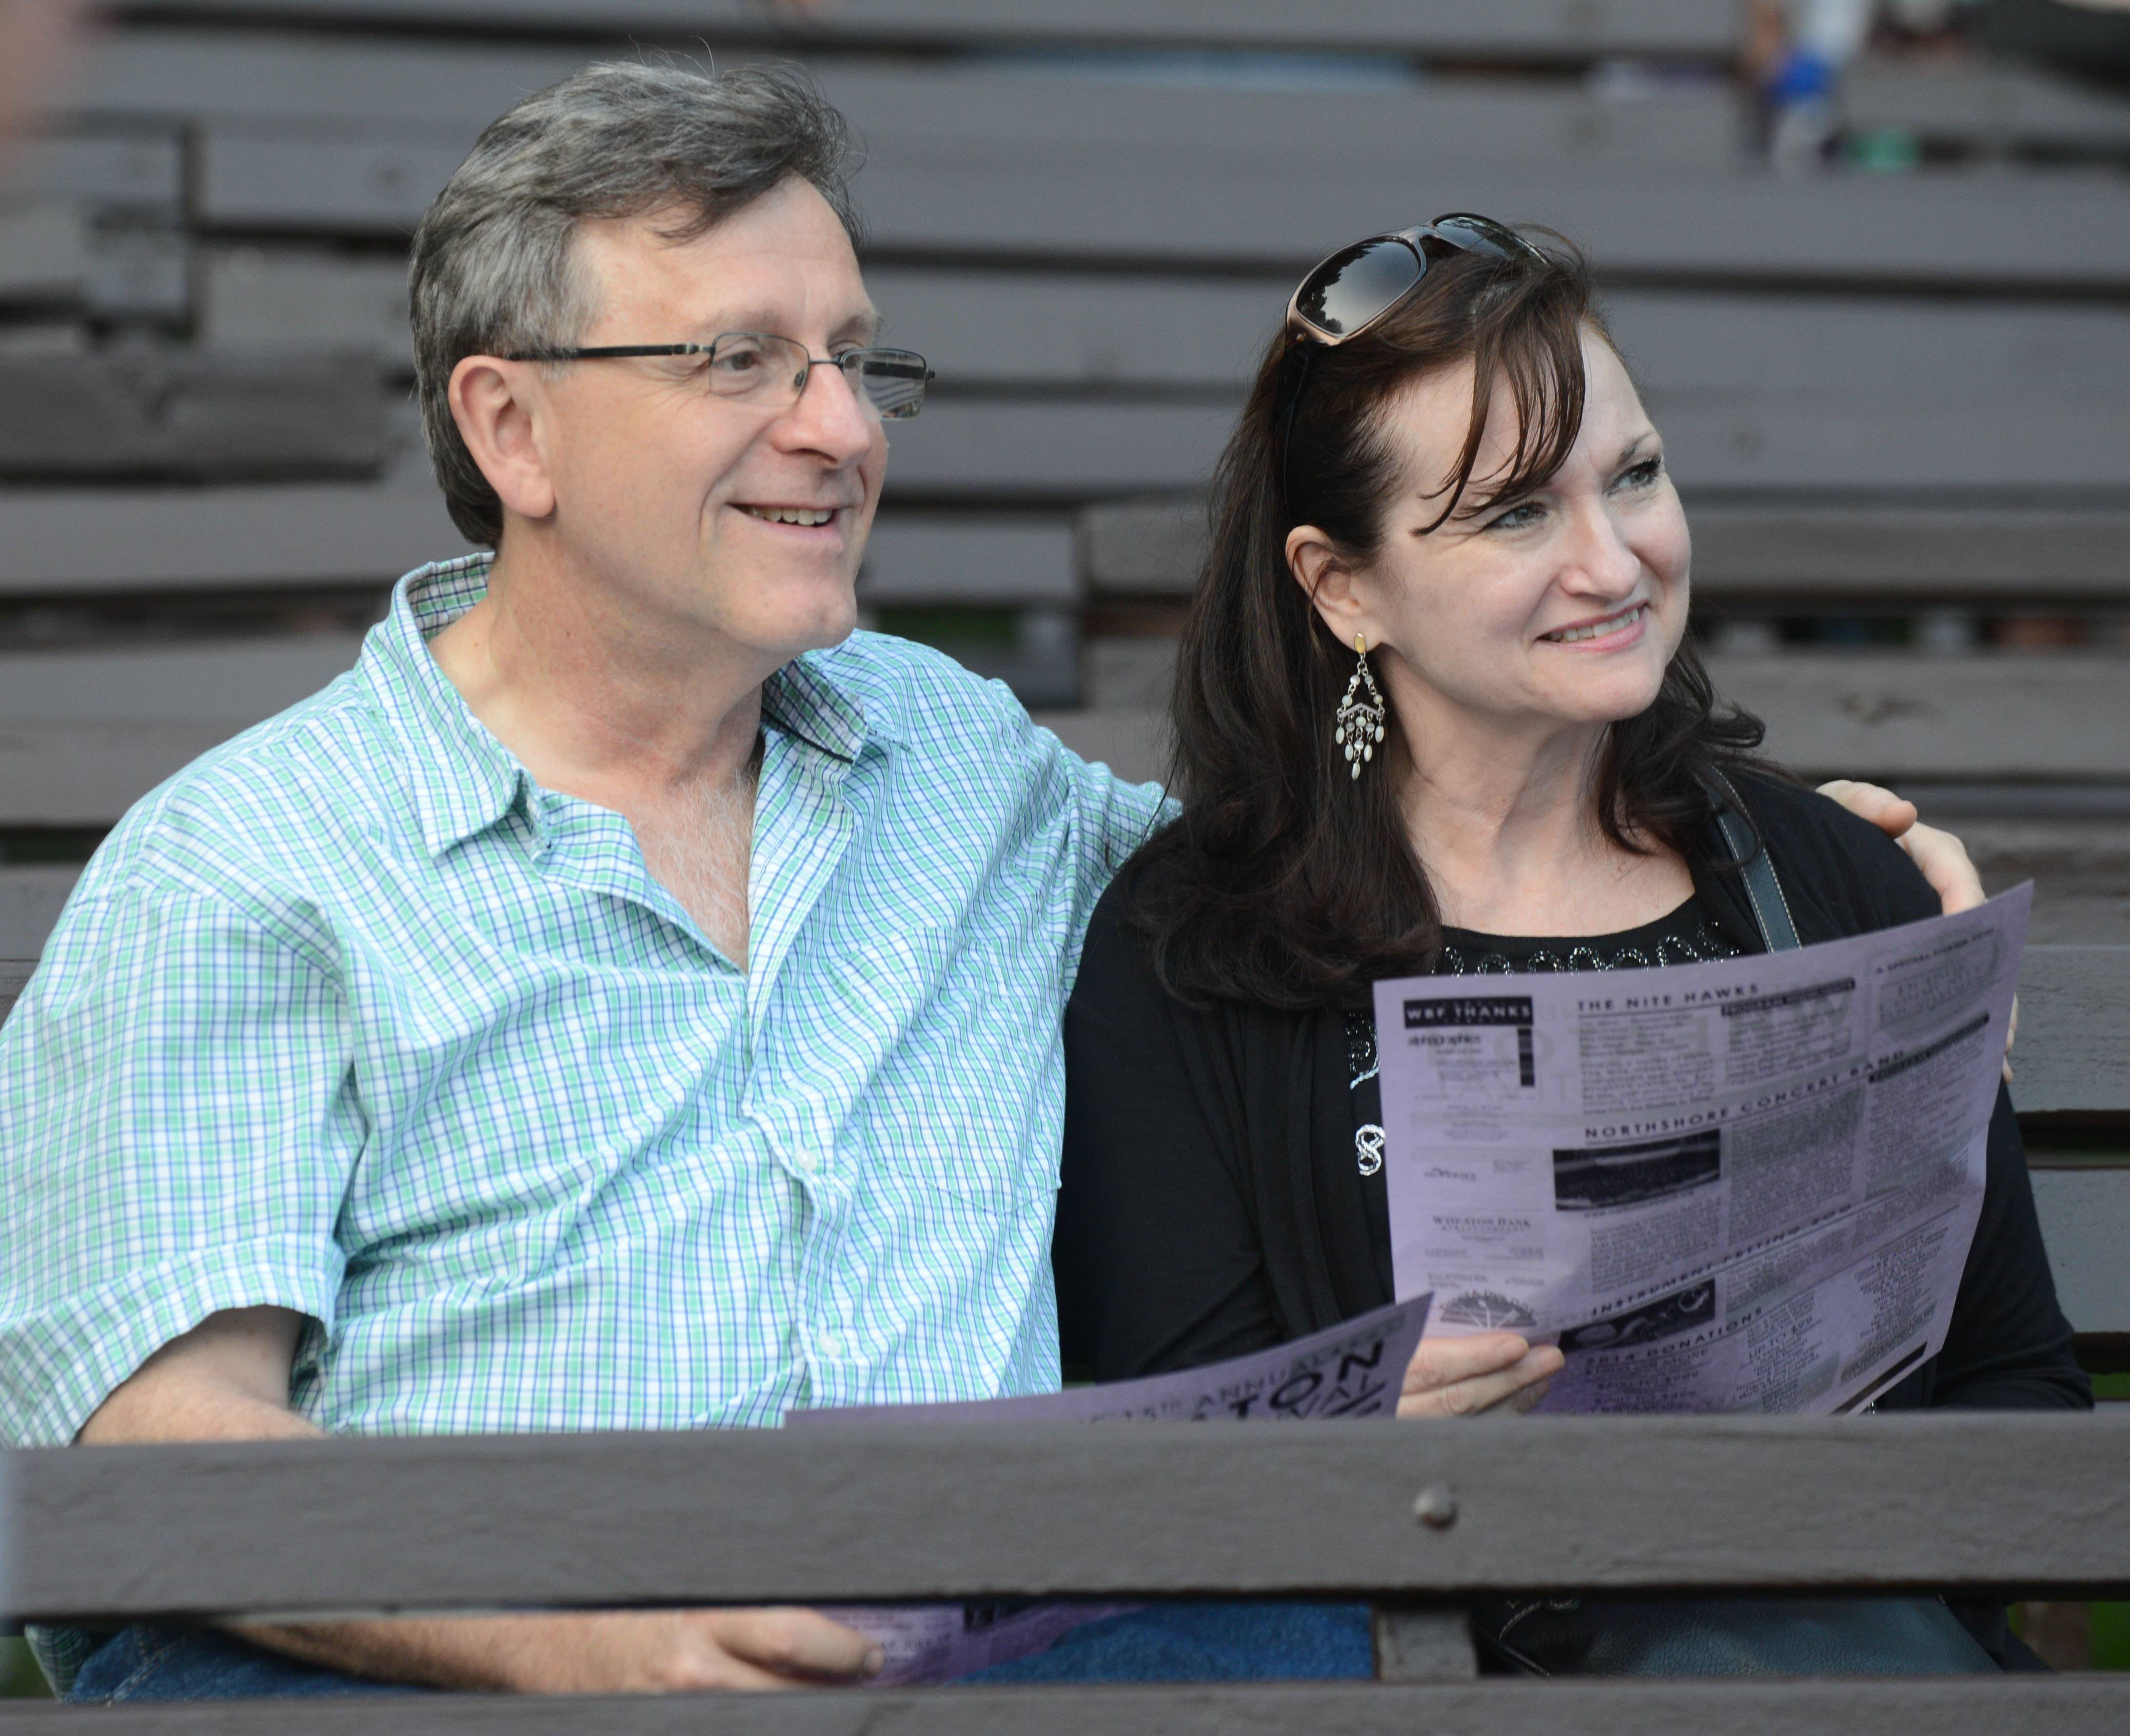 Paul Michna/pmichna@dailyherald.comMarc and Denise Donatelle of Bartlett are all smiles during the 15th annual Wheaton Band Festival. The fest opened Friday night in Memorial Park.